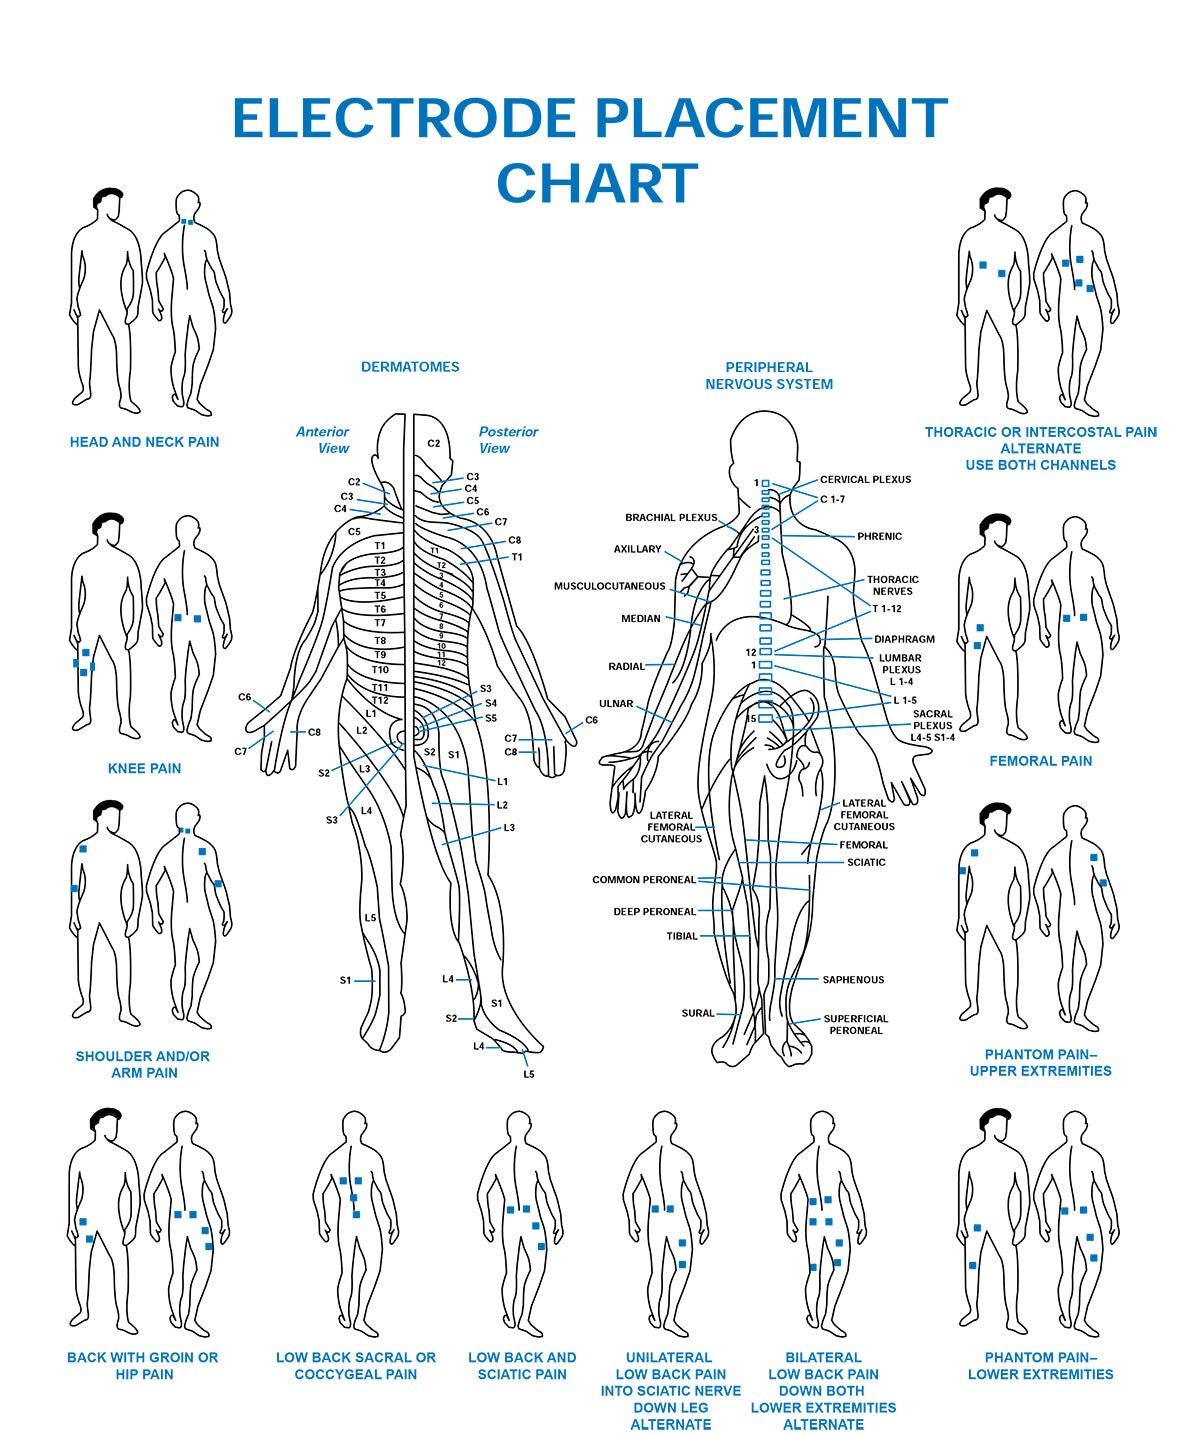 Electrode placement chart esa medical